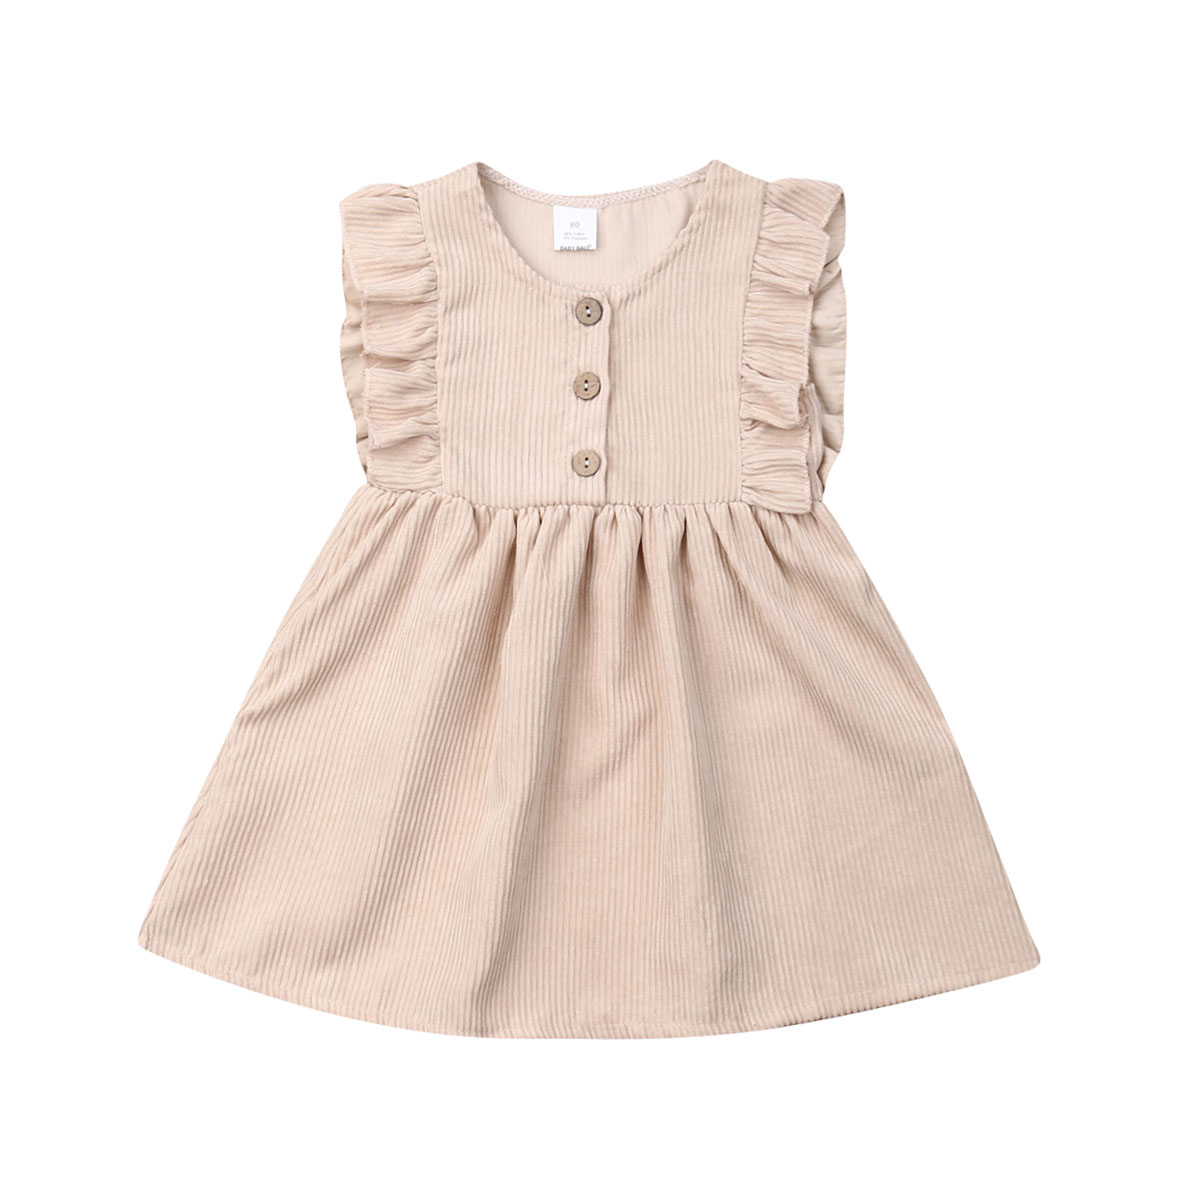 New Fashion Newborn Dress Infant Baby Clothes Dress For Girl Clothing Princess Party Dresses Ruffle Baby Dresses Casual Sundress